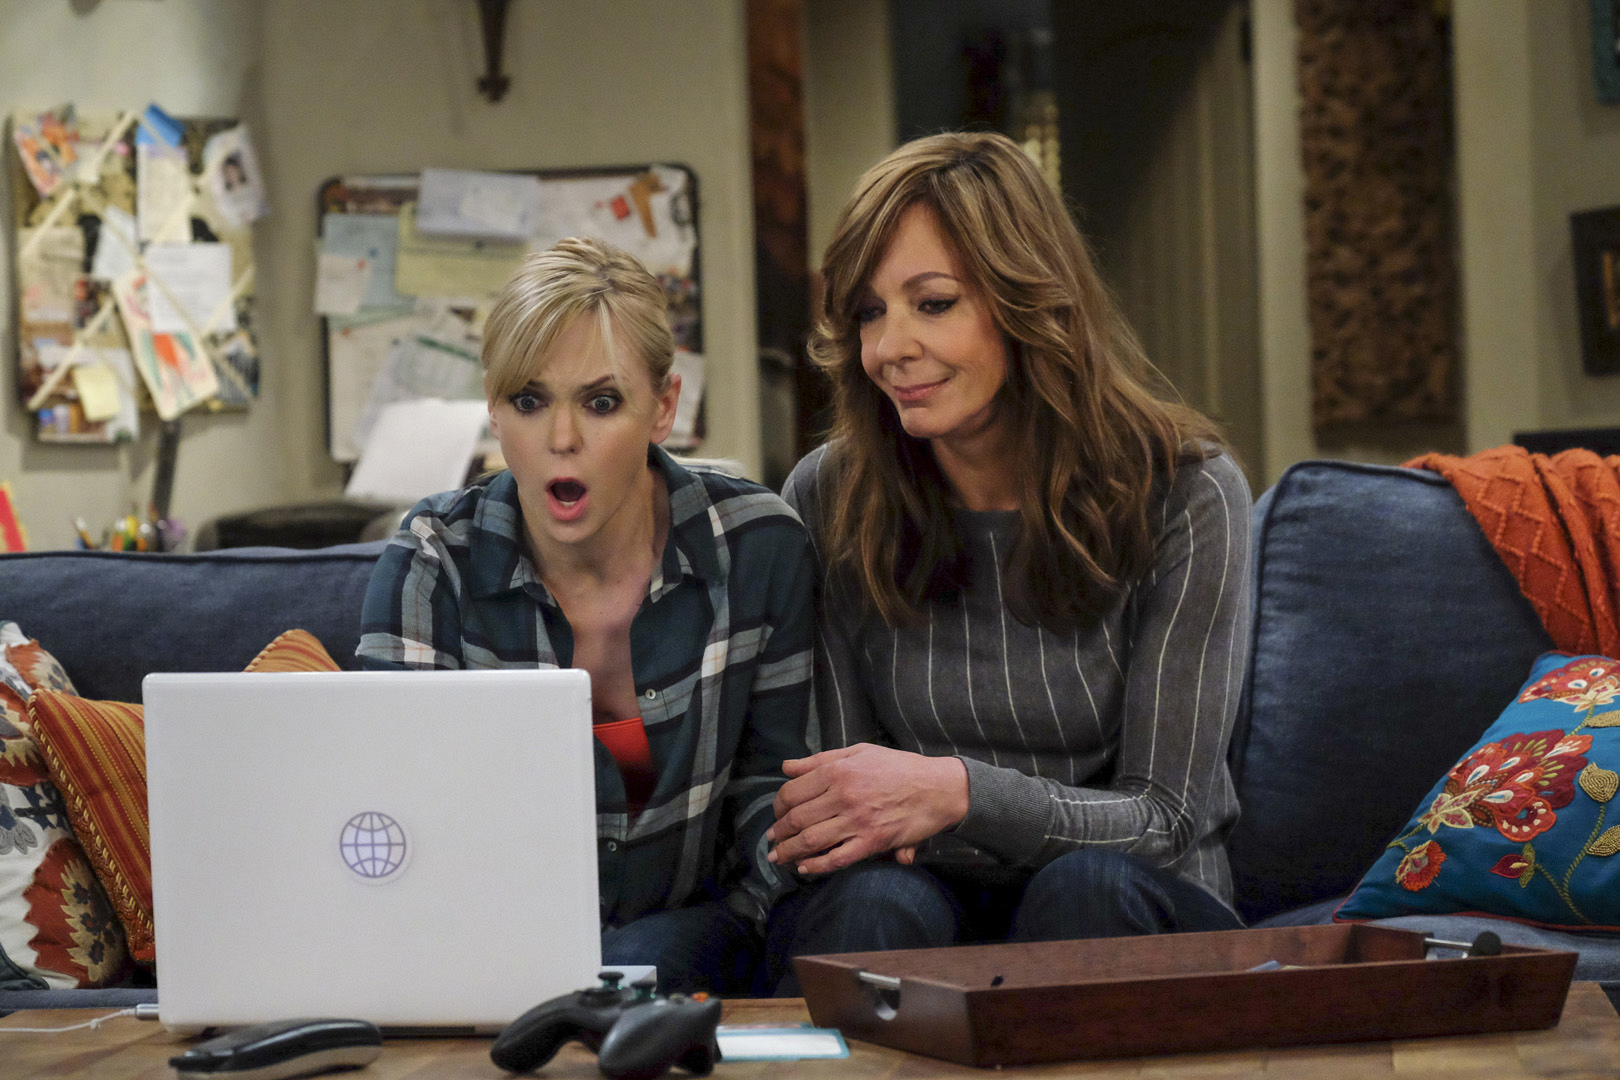 Christy asks for Bonnie's support as she prepares to see her final exam scores online.